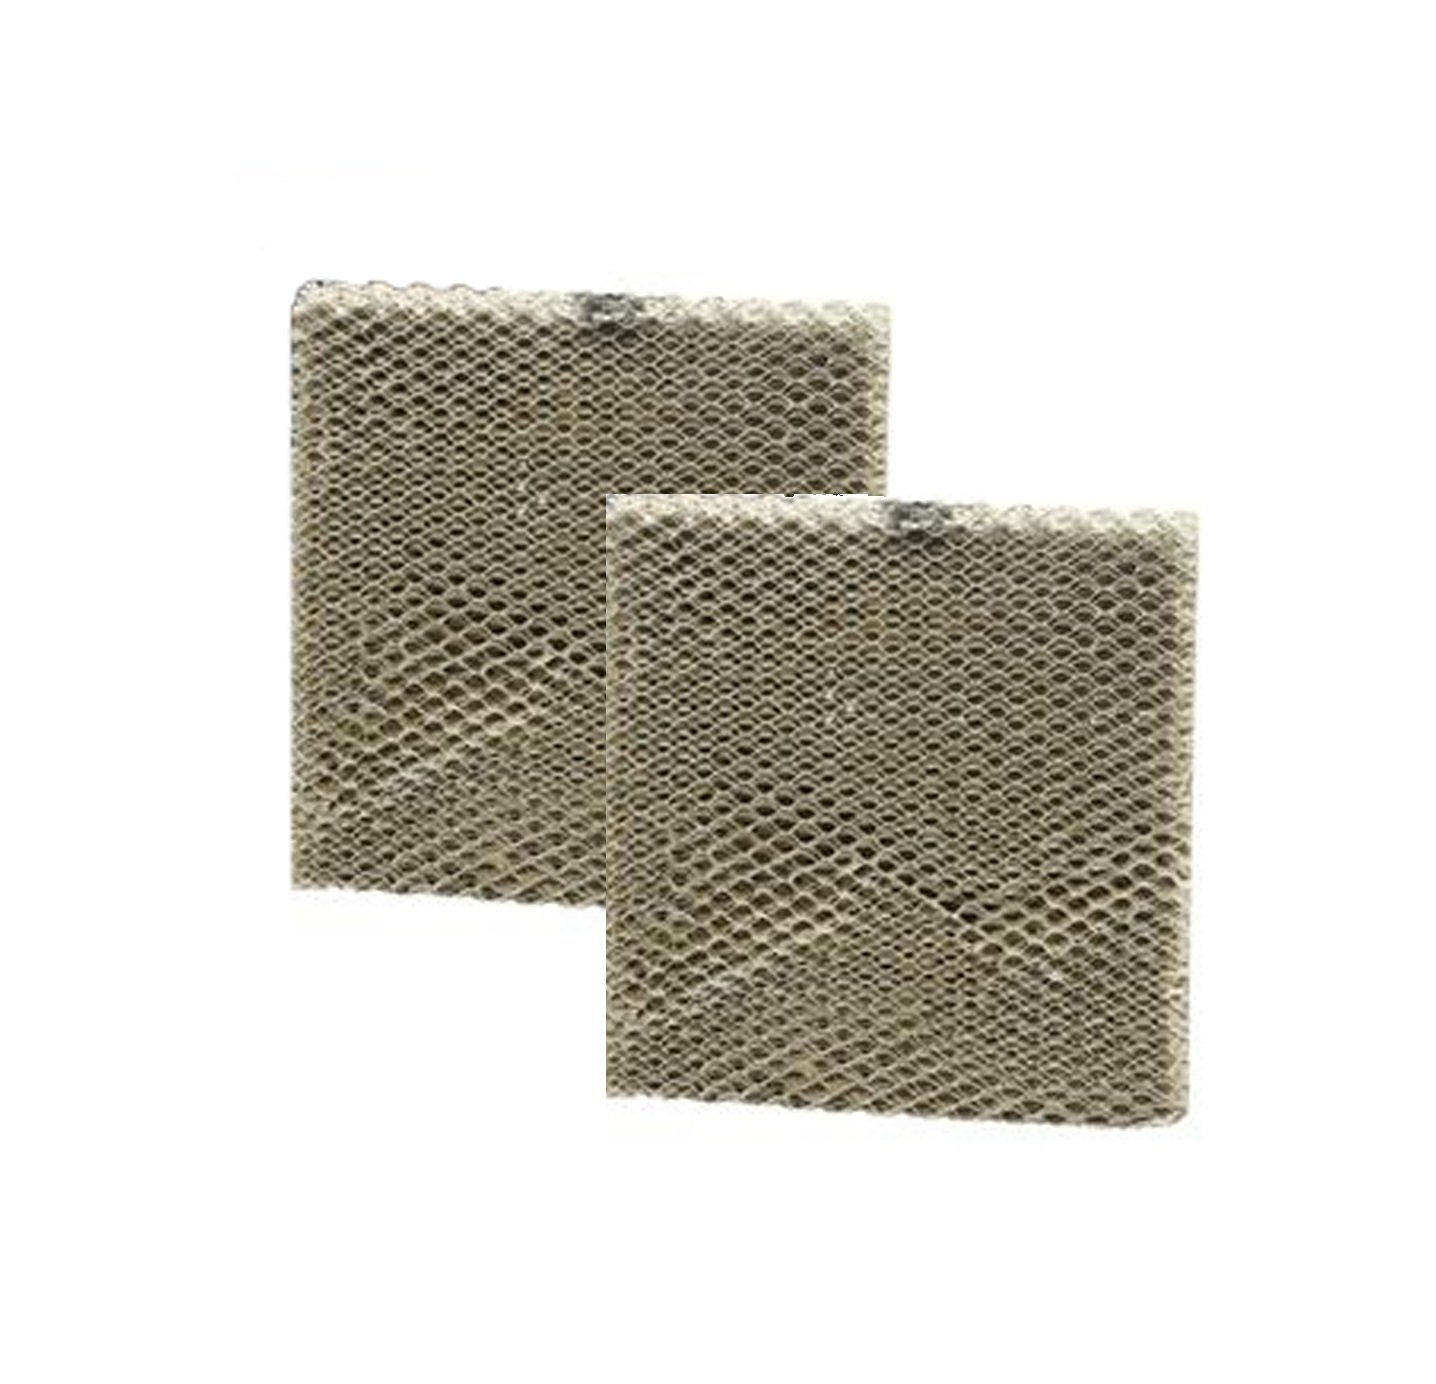 Tier1 Replacement for Aprilaire Water Panel 10 Models 110, 220, 500, 550, 558 Humidifier Filter 2 Pack